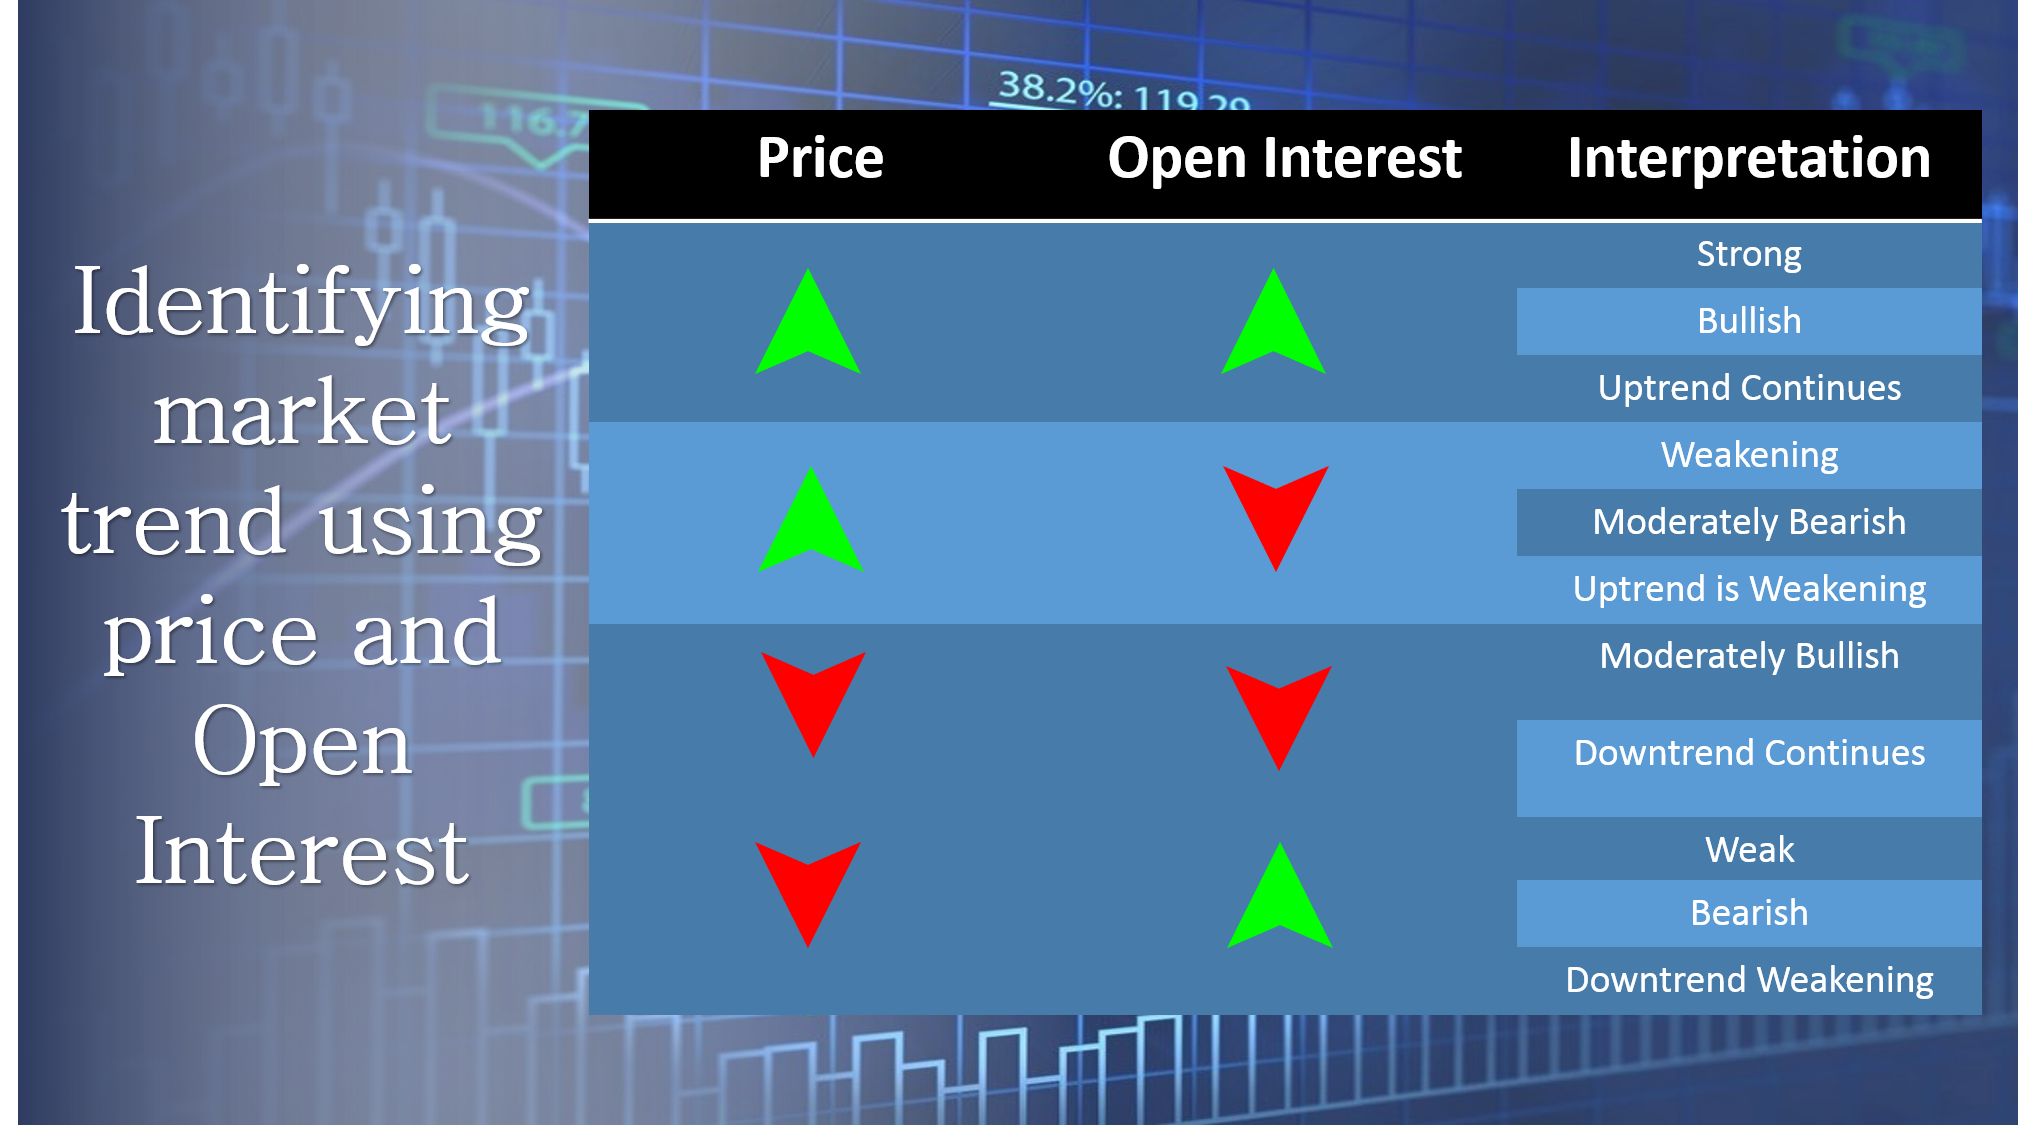 identify market trend using price and open interest